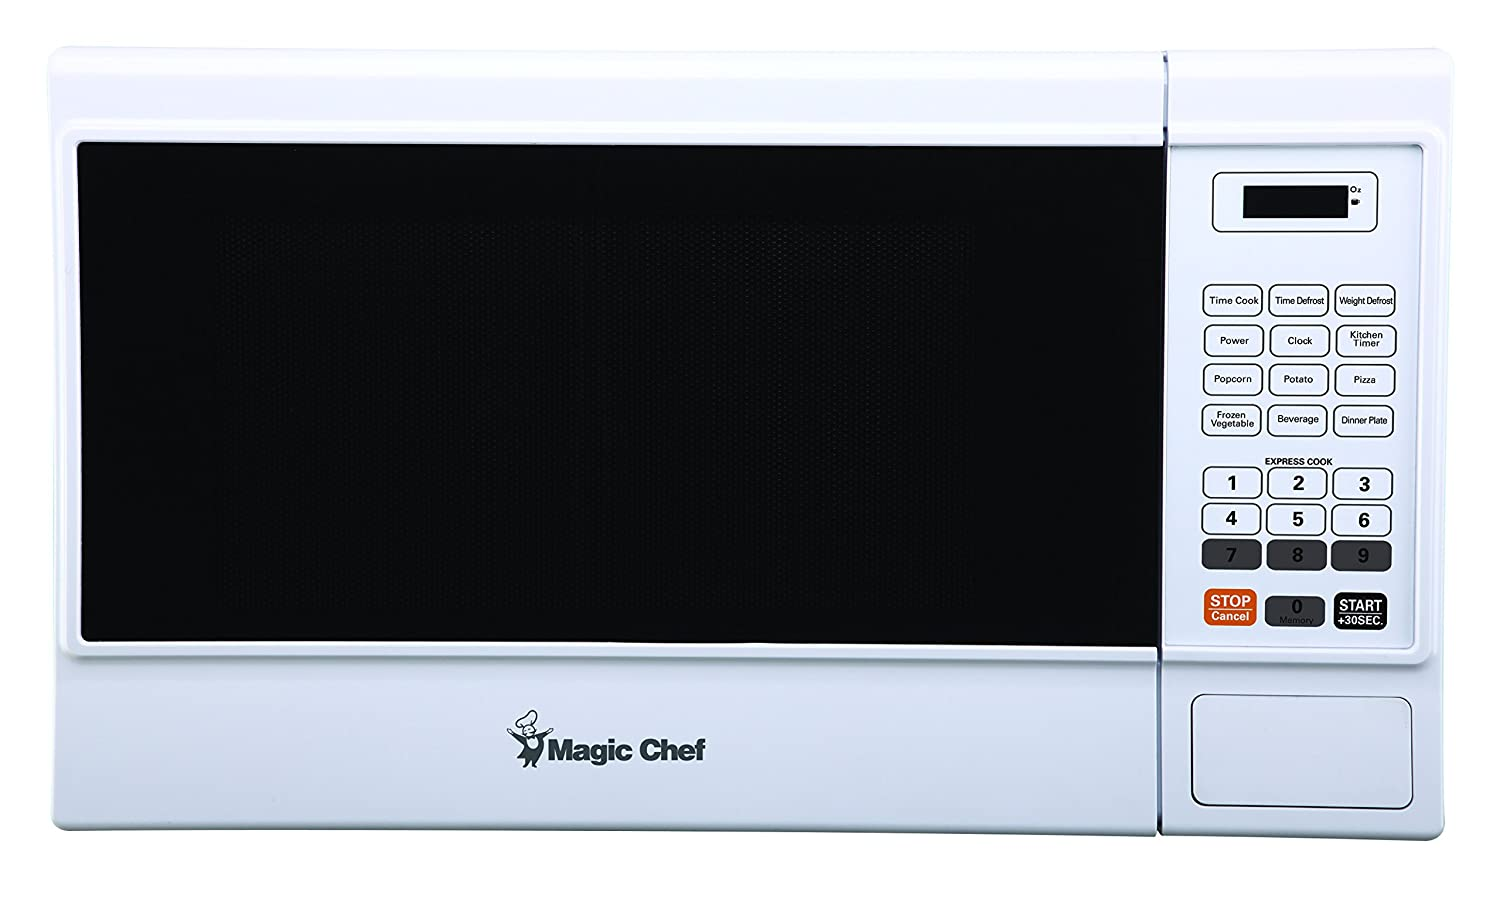 Magic Chef Cu. Ft. 1000W Countertop Oven MCM1310W 1.3 cu.ft. Microwave White